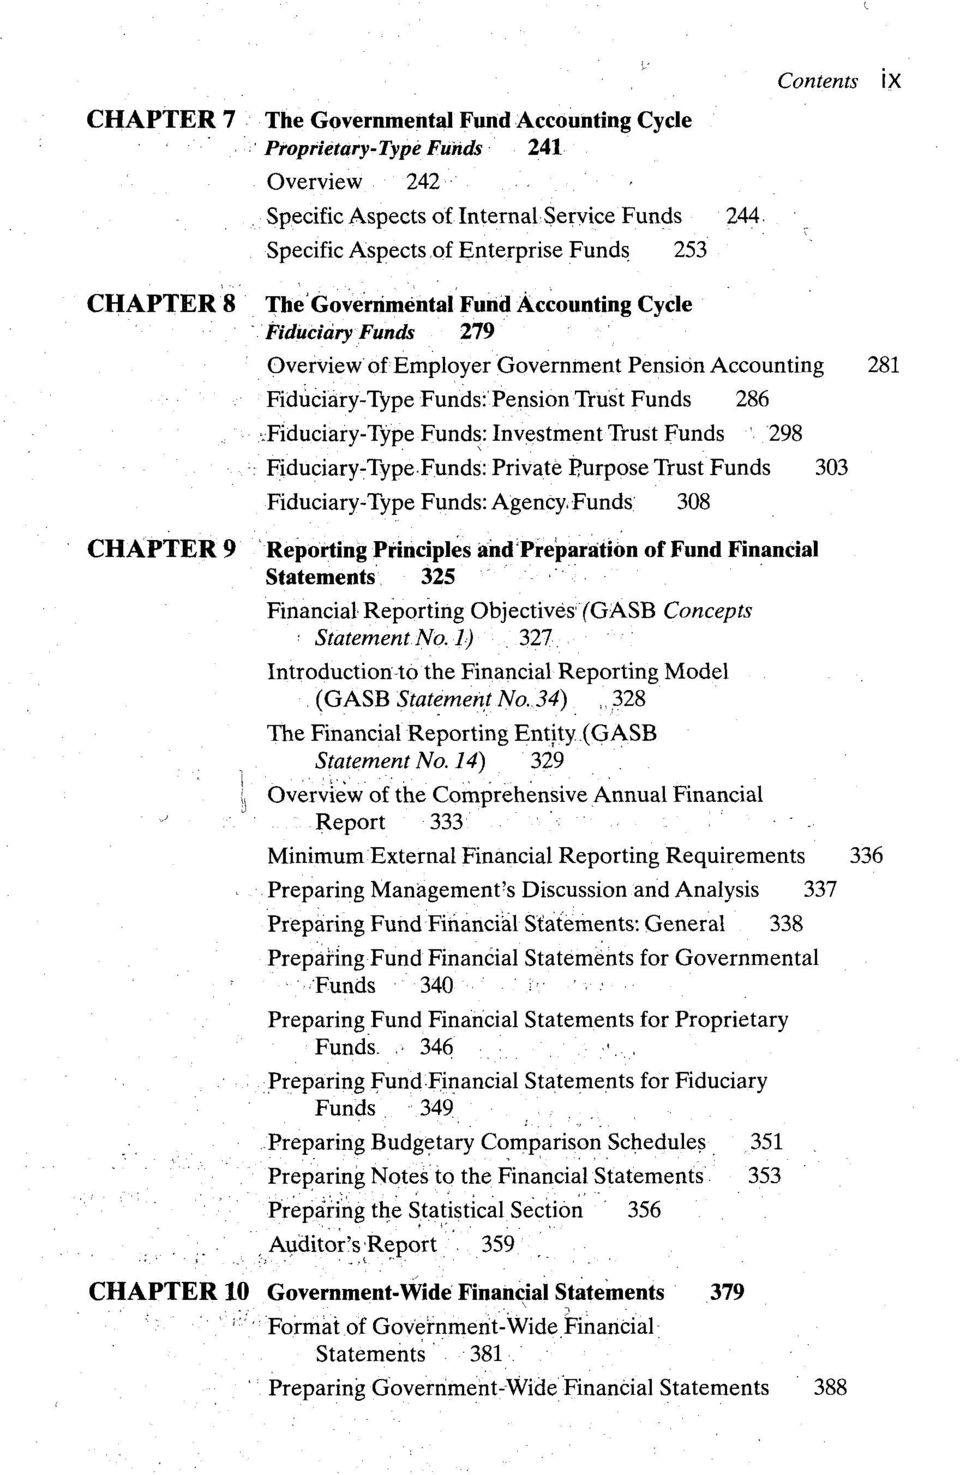 ..' Specific Aspects of Internal Service Funds 244 Specific Aspects of Enterprise Funds 253 Contents IX CHAPTER 8 Fiduciary Funds 279 Overview of Employer Government Pension Accounting 281